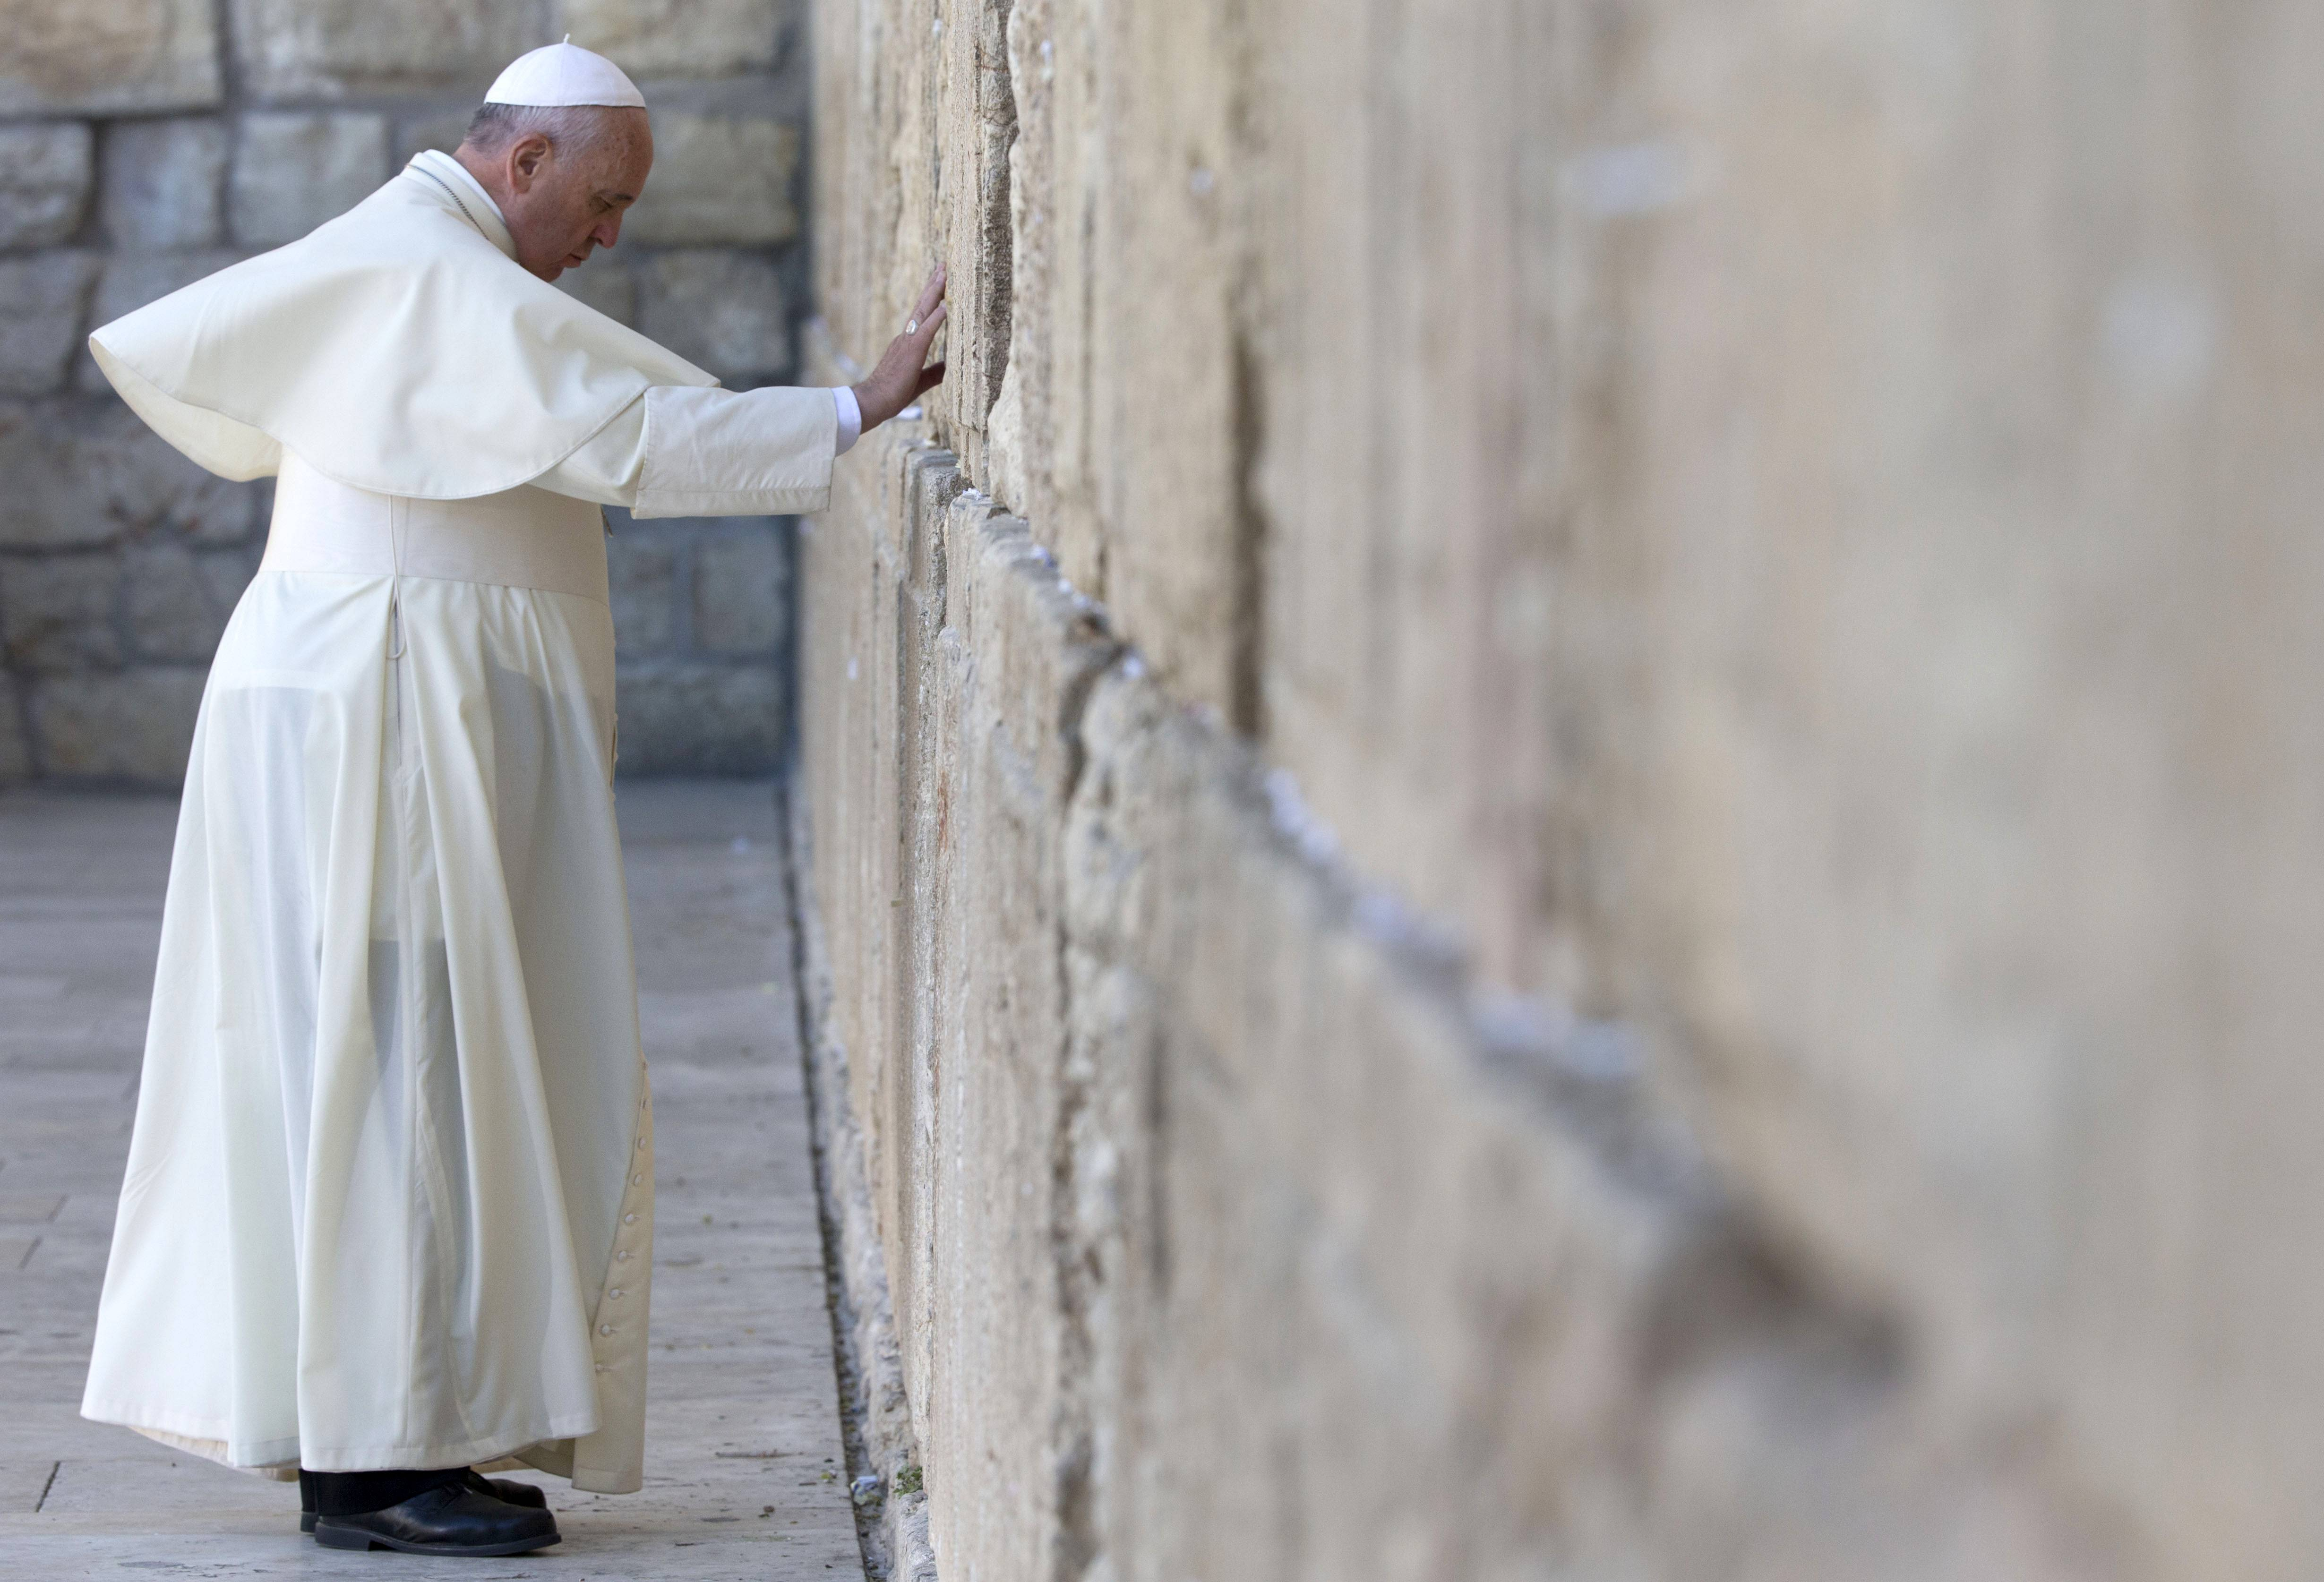 Pope wraps up delicate Mideast pilgrimage